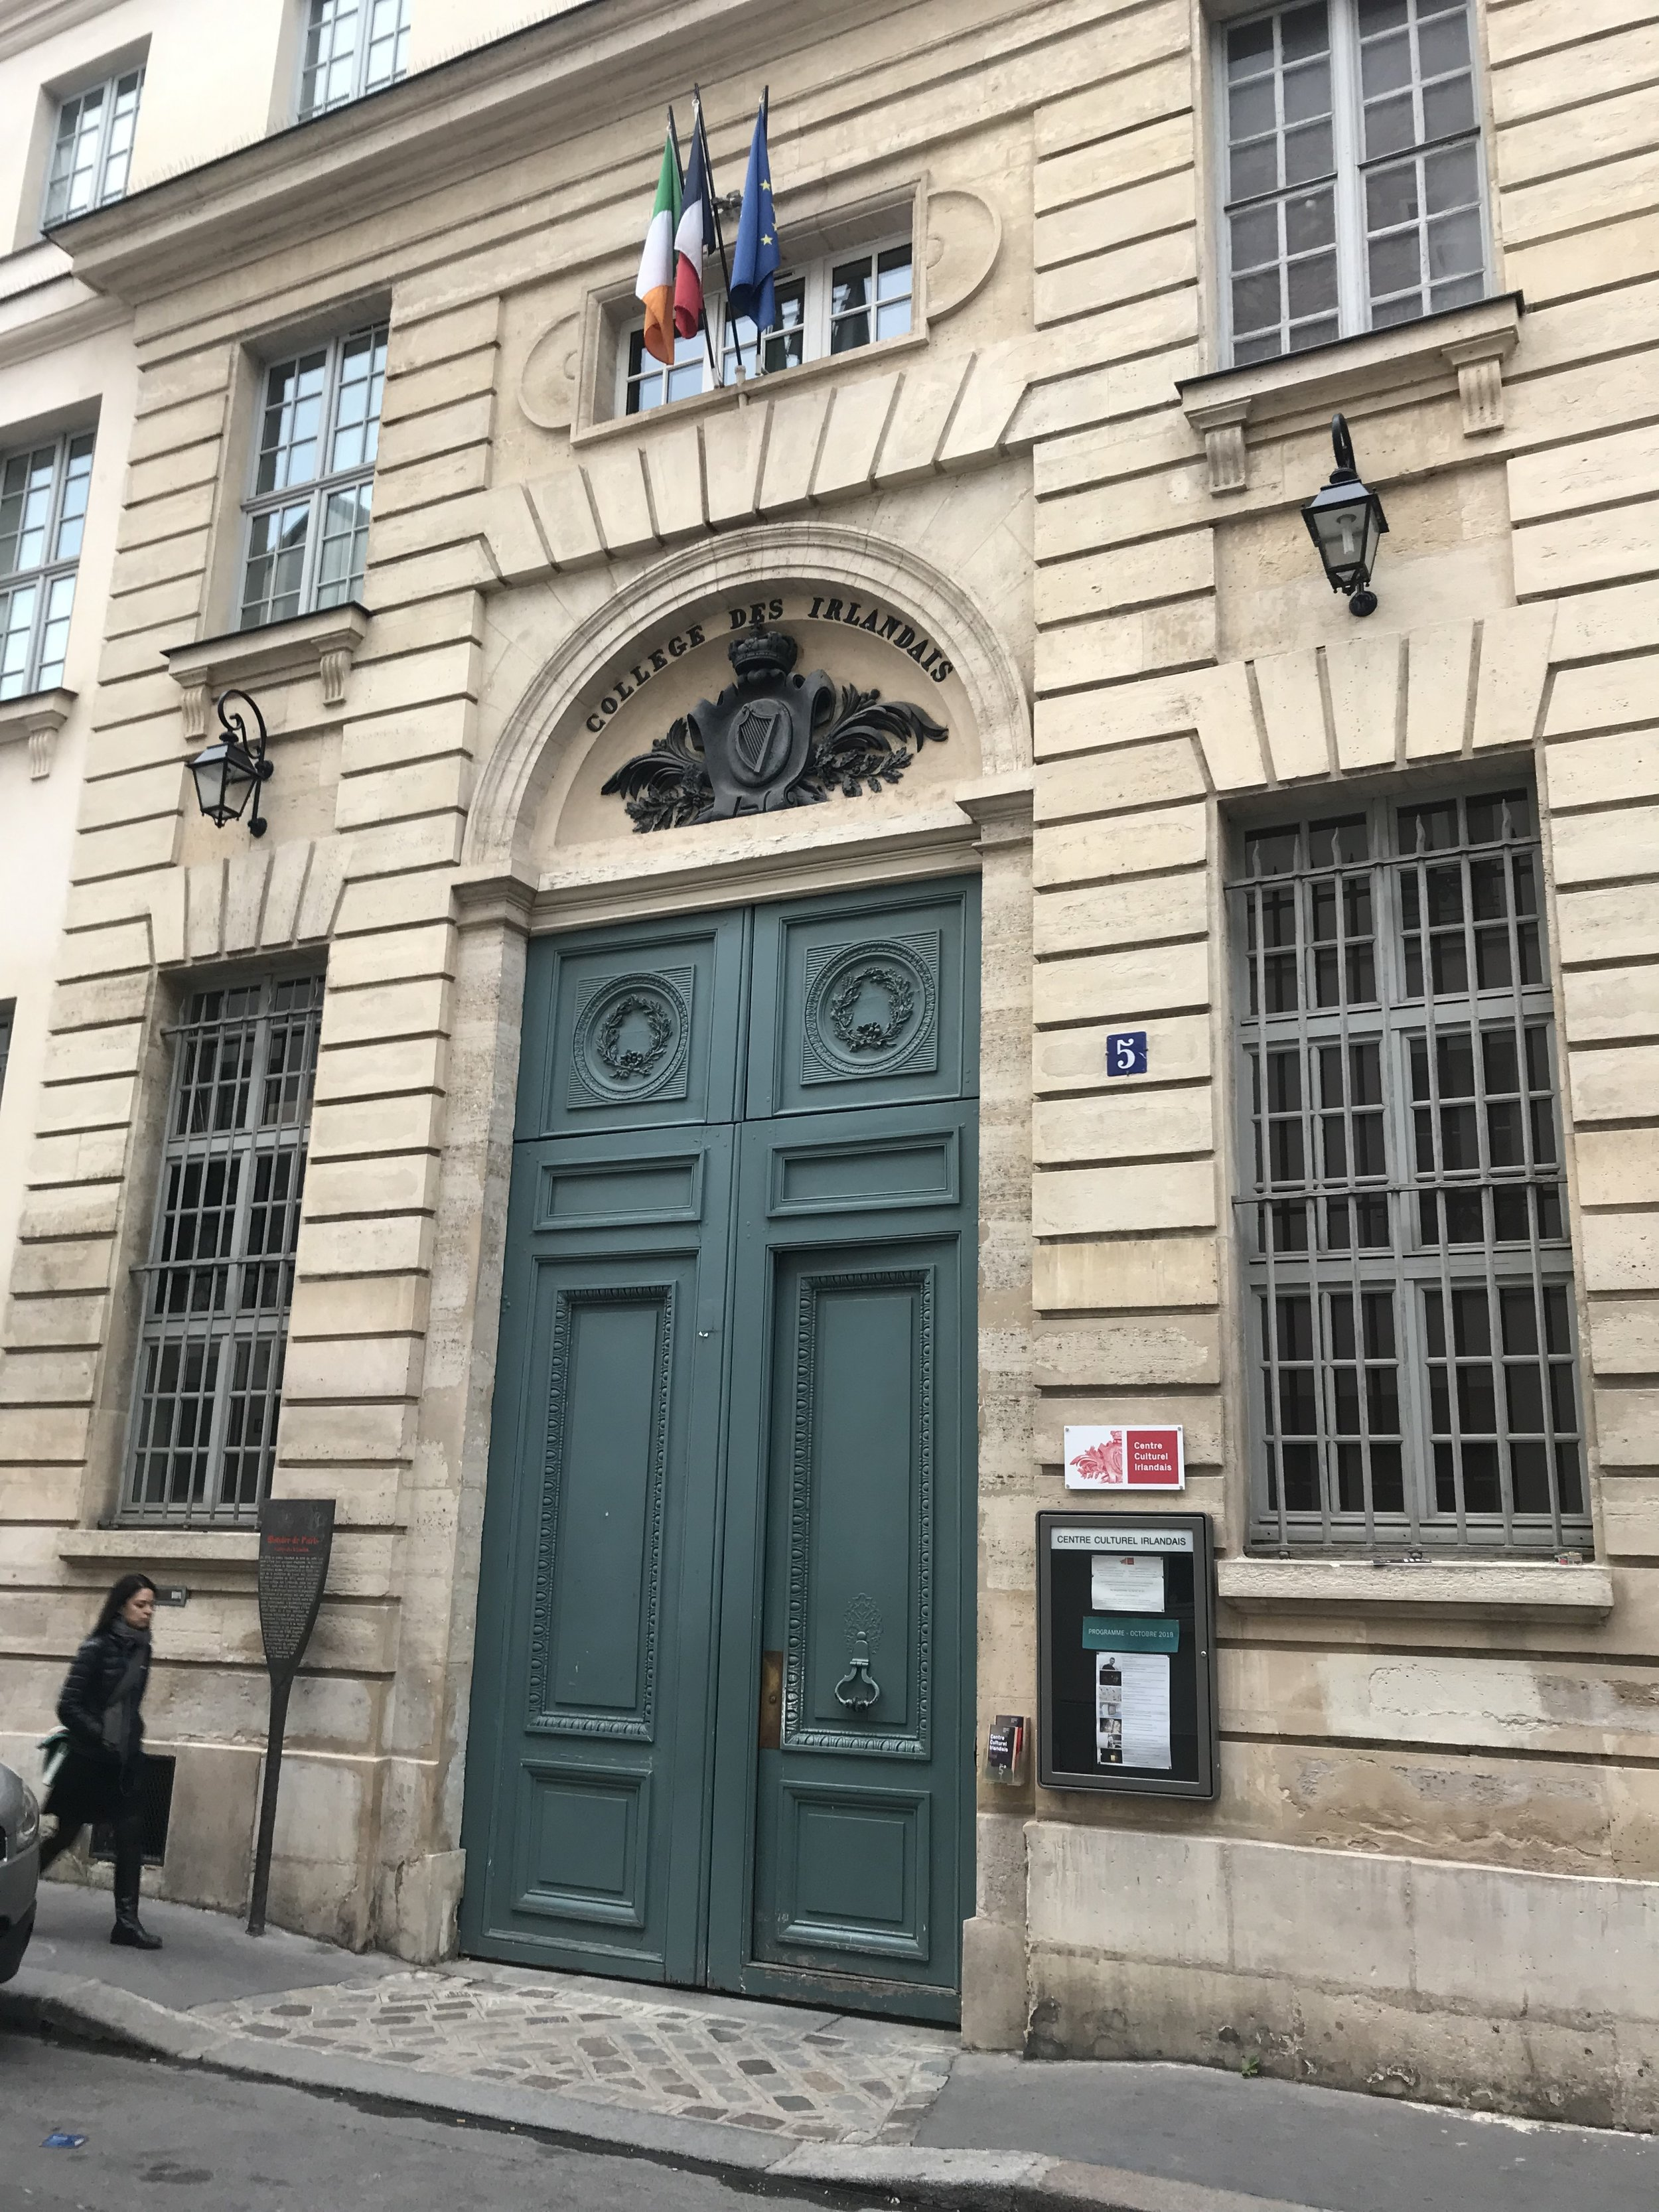 Entrance to the Collège des Irlandais in Paris